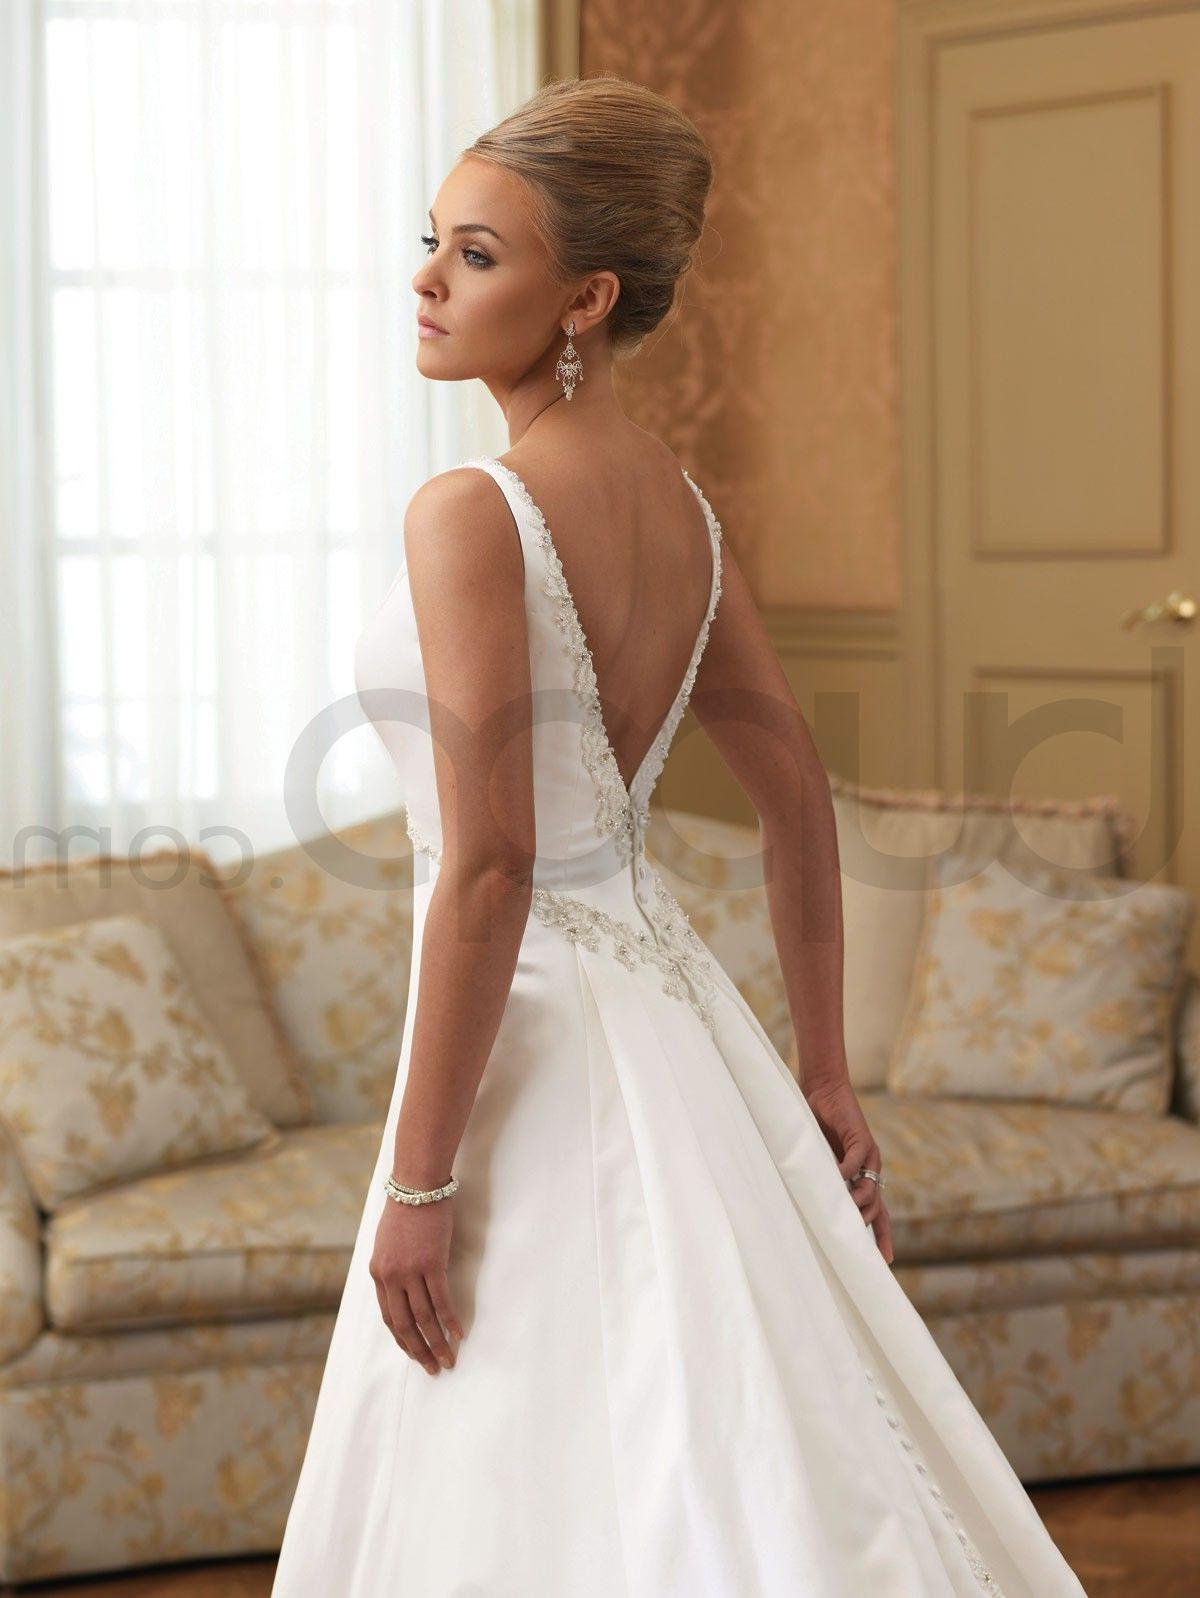 buy wedding gowns low bacfk low back wedding dress Buy Wedding Gowns low bacfk wedding gowns stylish wedding gowns